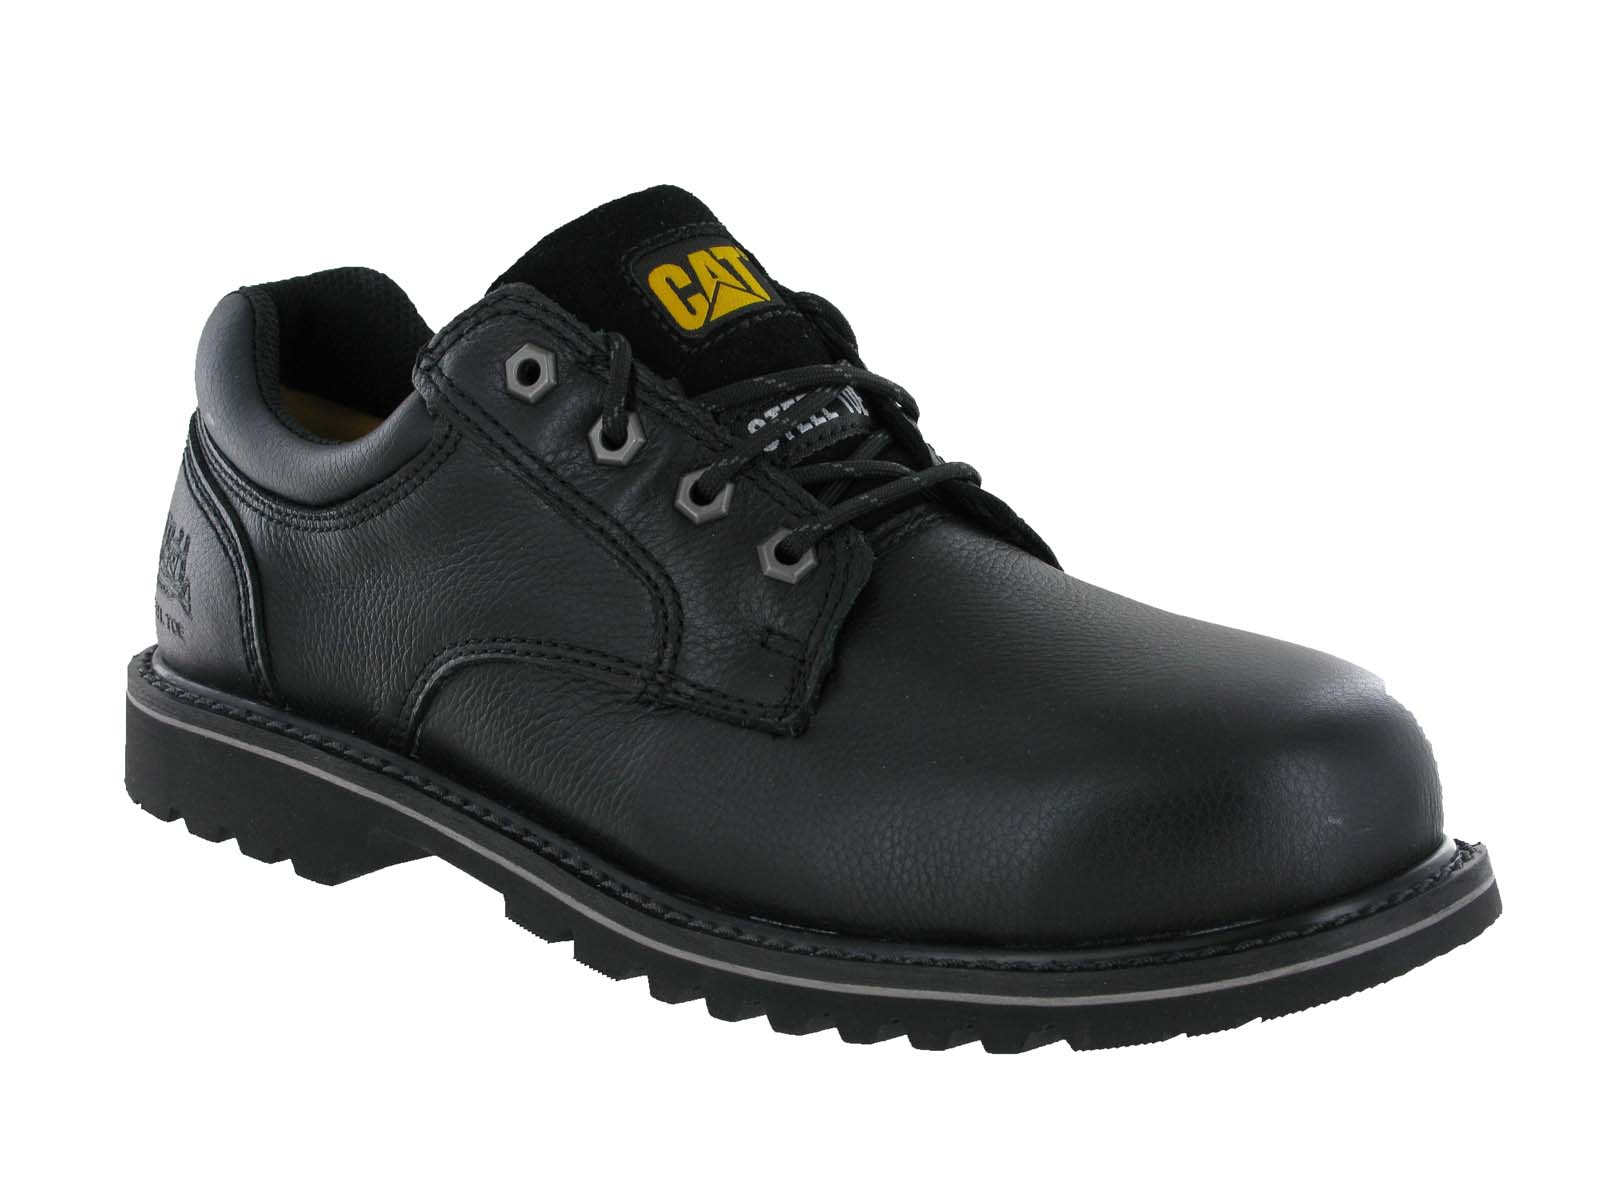 Pier One formal monk shoes in black leather. £ New Look faux leather chelsea boots in black. £ River Island loafers in black. £ WALK London formal monk in black leather. £ ALDO Gwiradien bar loafers in black leather. £ ASOS DESIGN brogue loafers in .